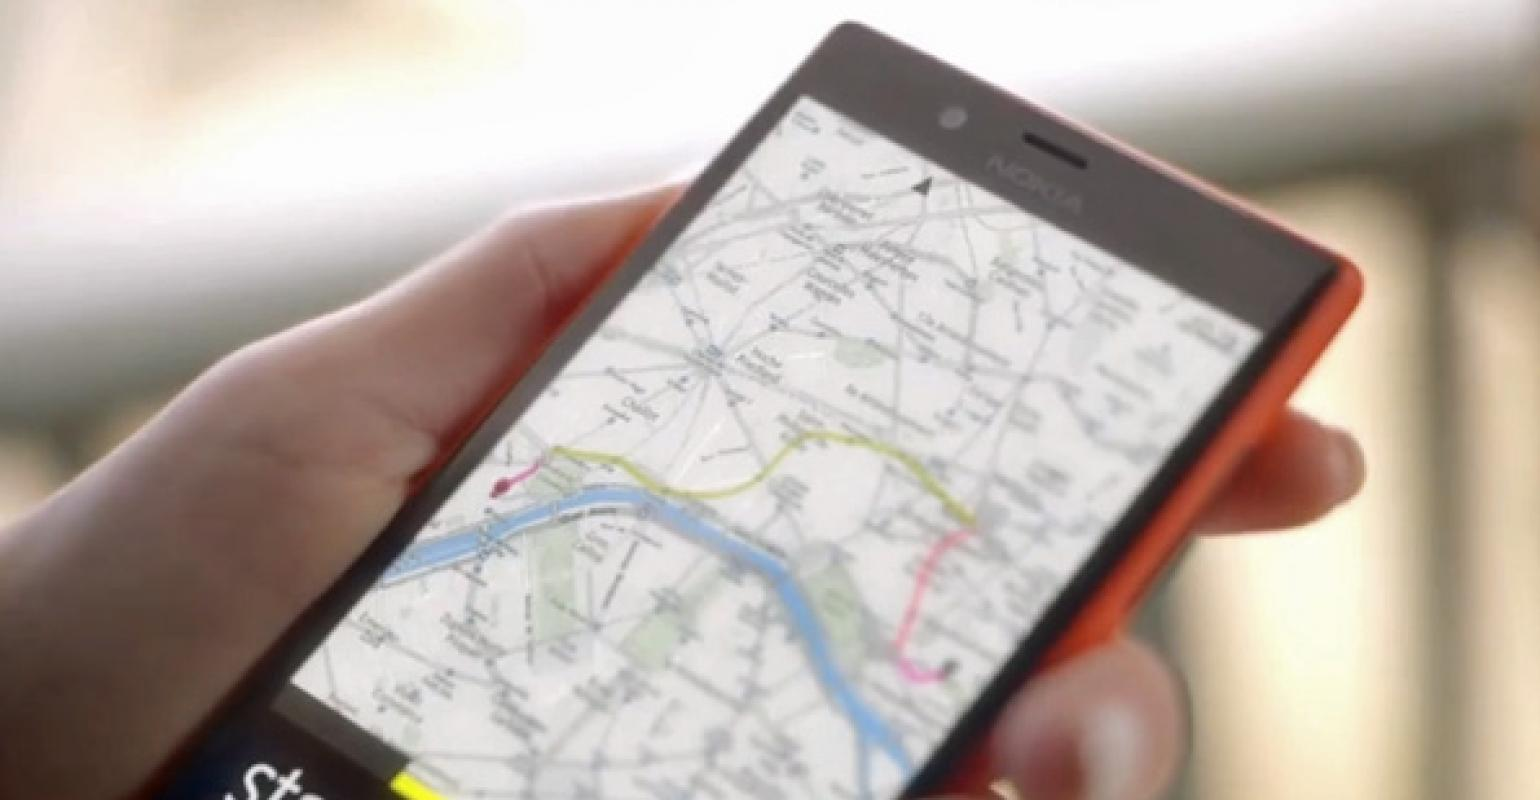 Windows Phone Book Maps Location Chapter Is Complete For